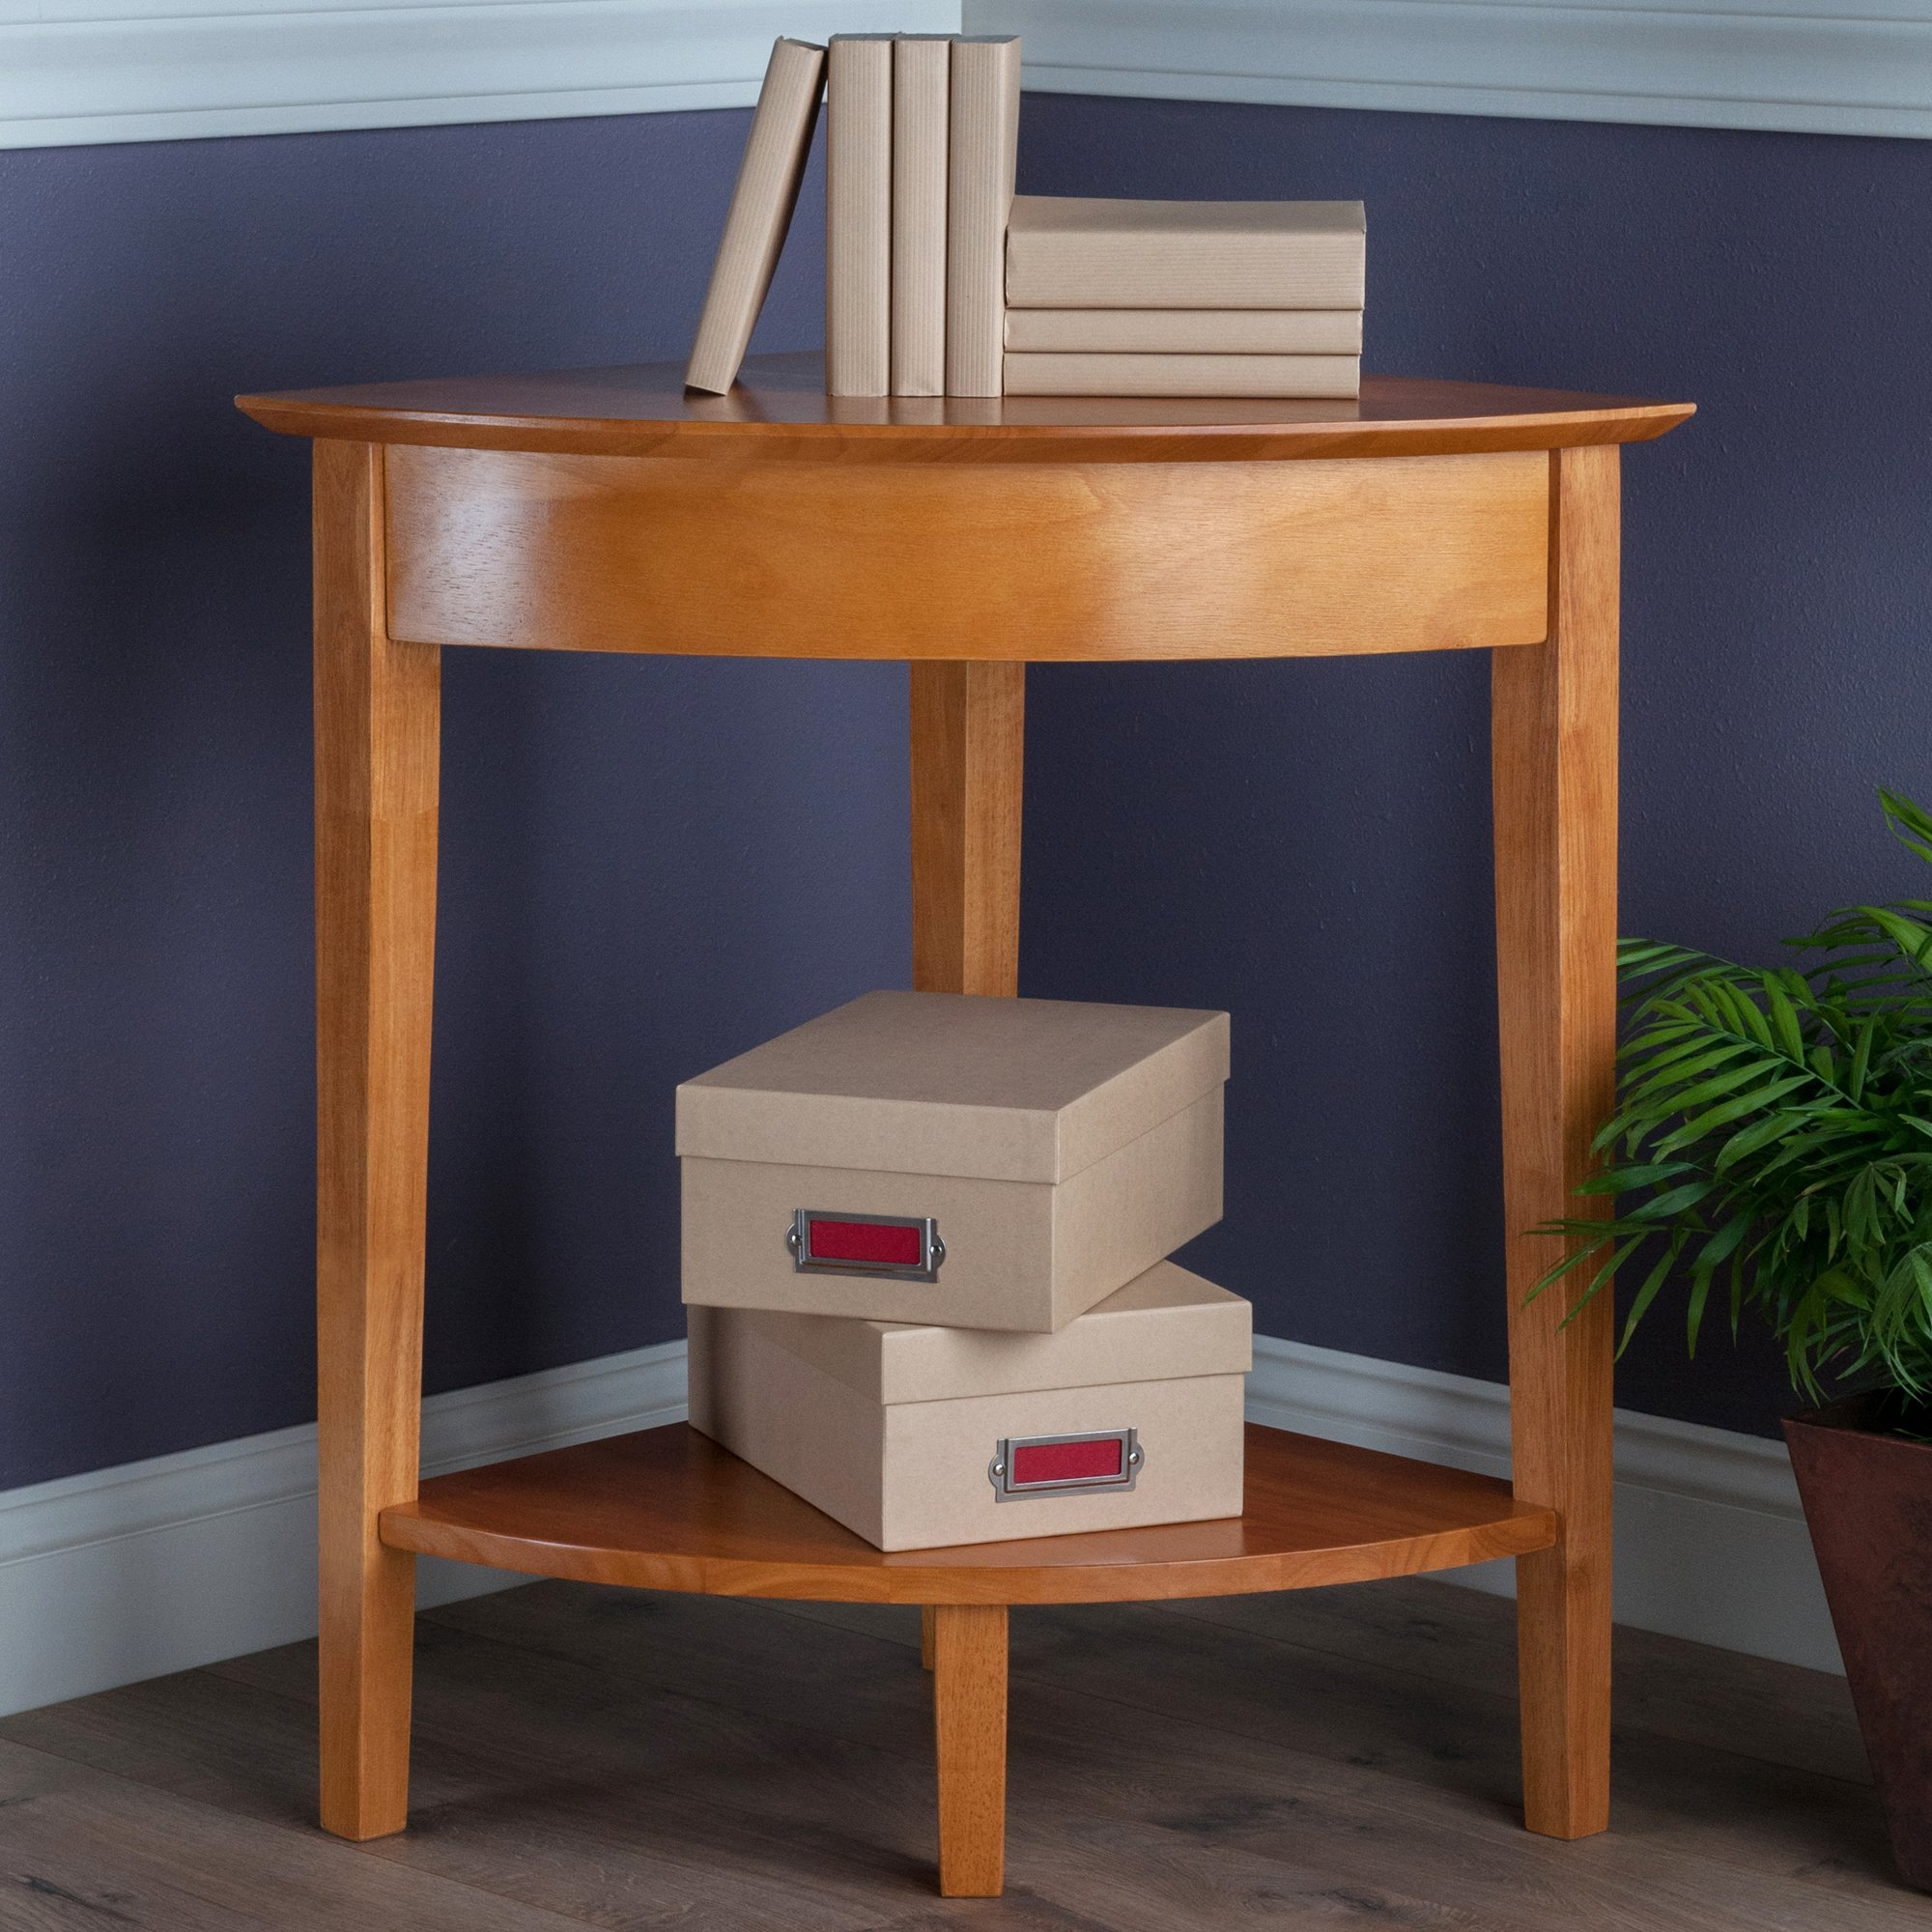 Winsome Wood Corner Desk with Shelf, Honey by Winsome Wood (Image #2)